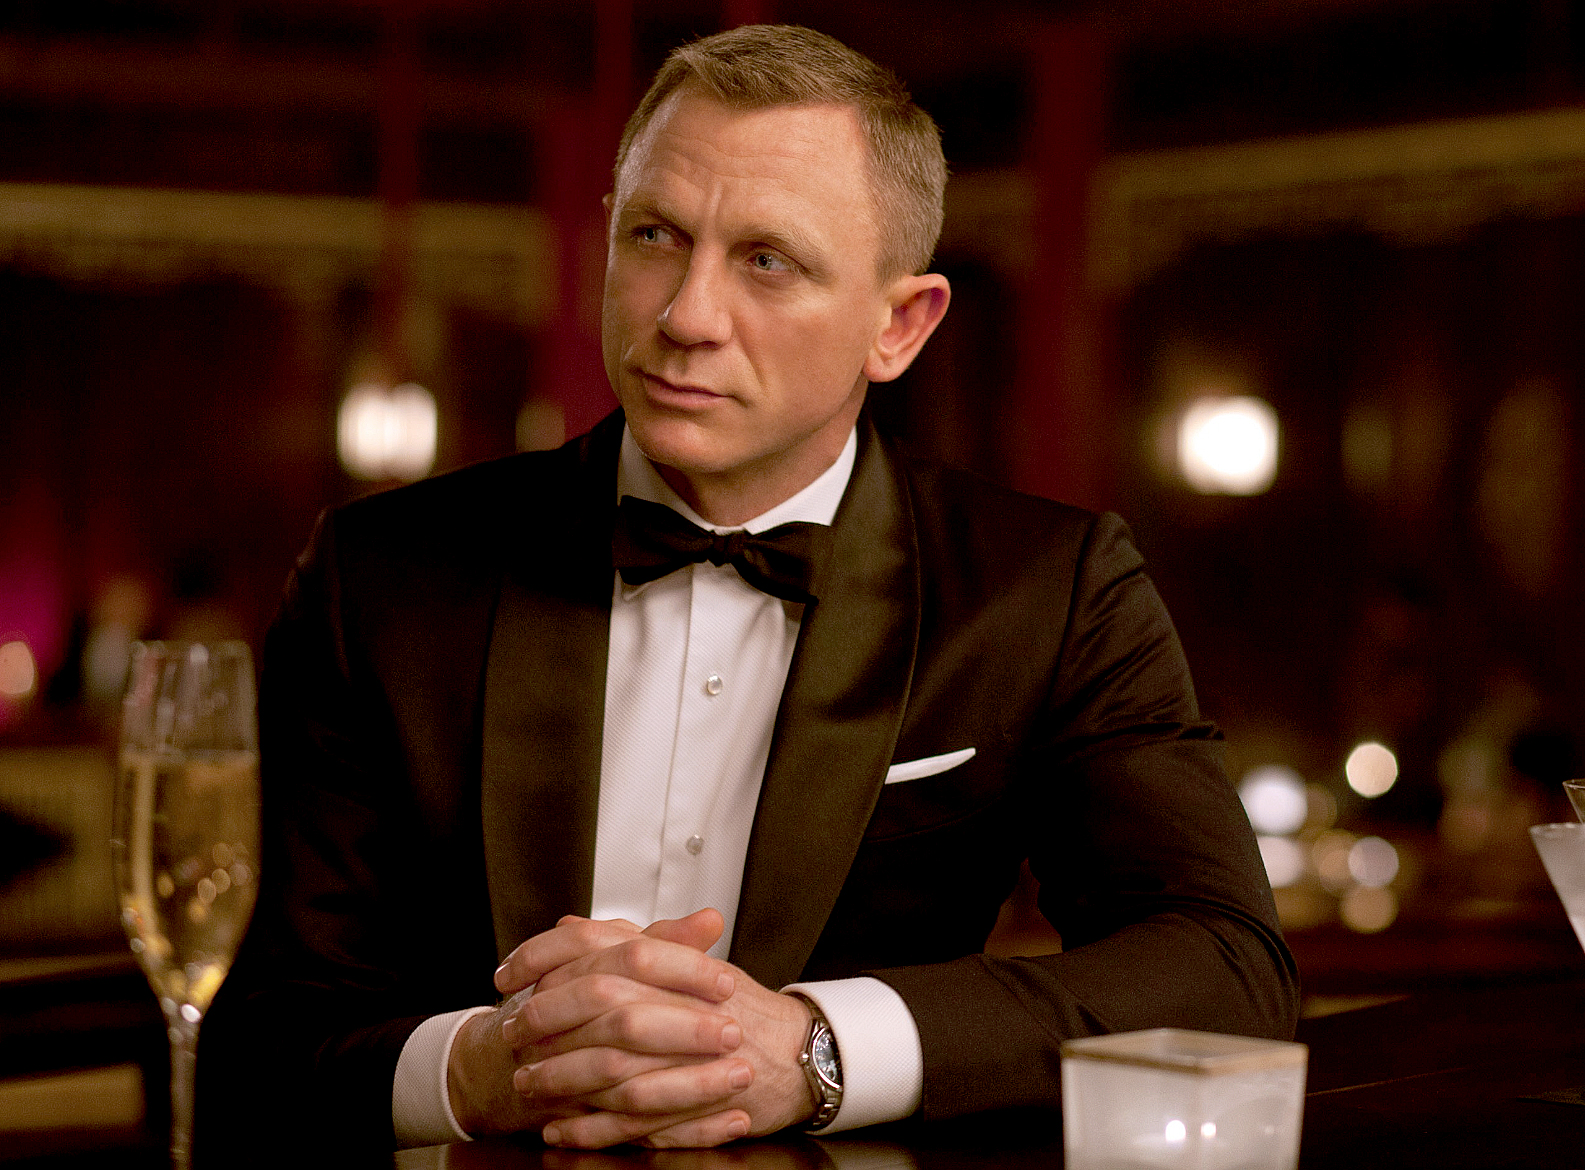 Danny Boyle confirmed to direct the new James Bond movie